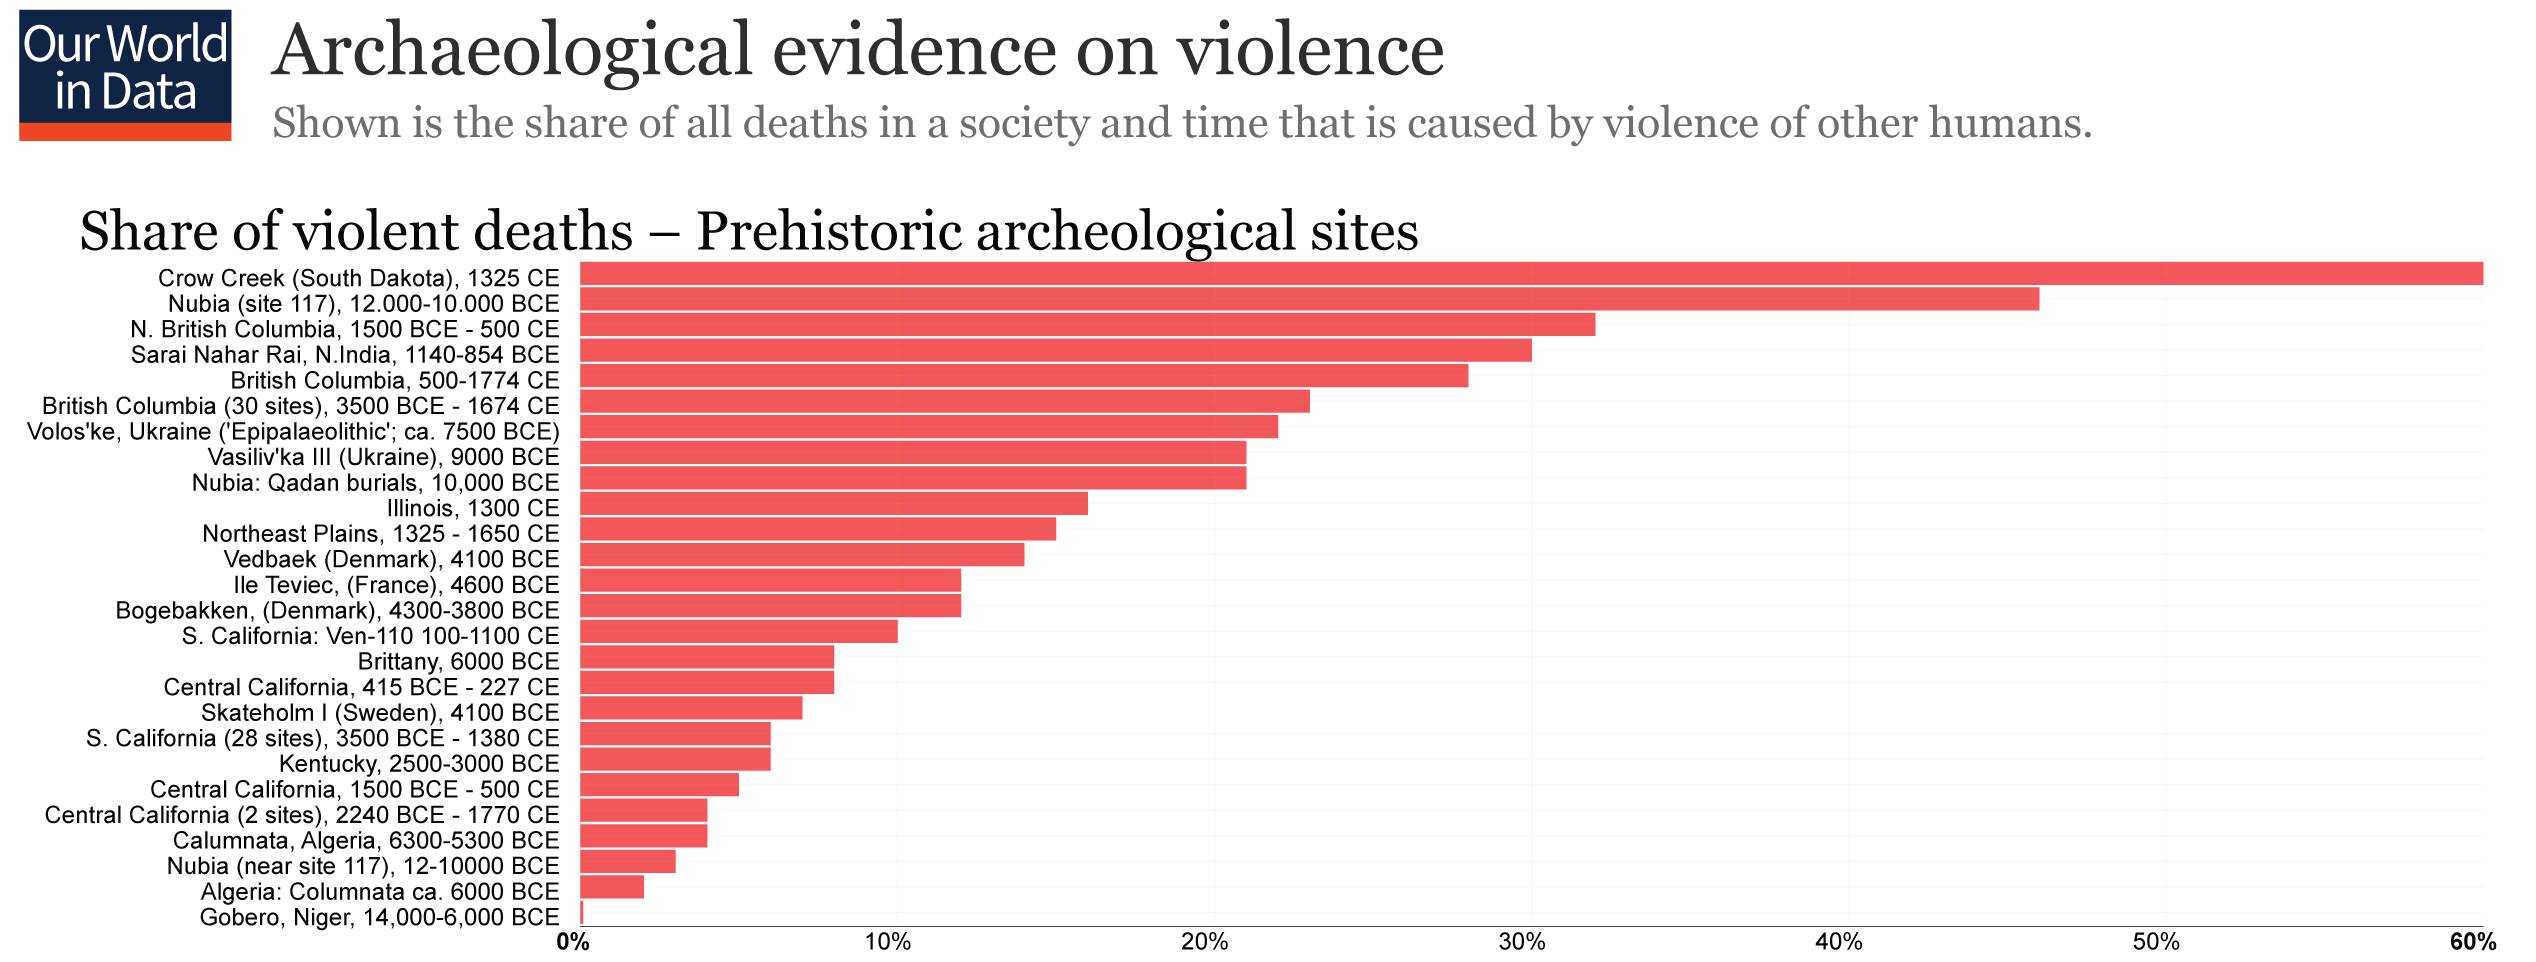 Share-of-Deaths_Archaeological-Evidence-on-Violence.png